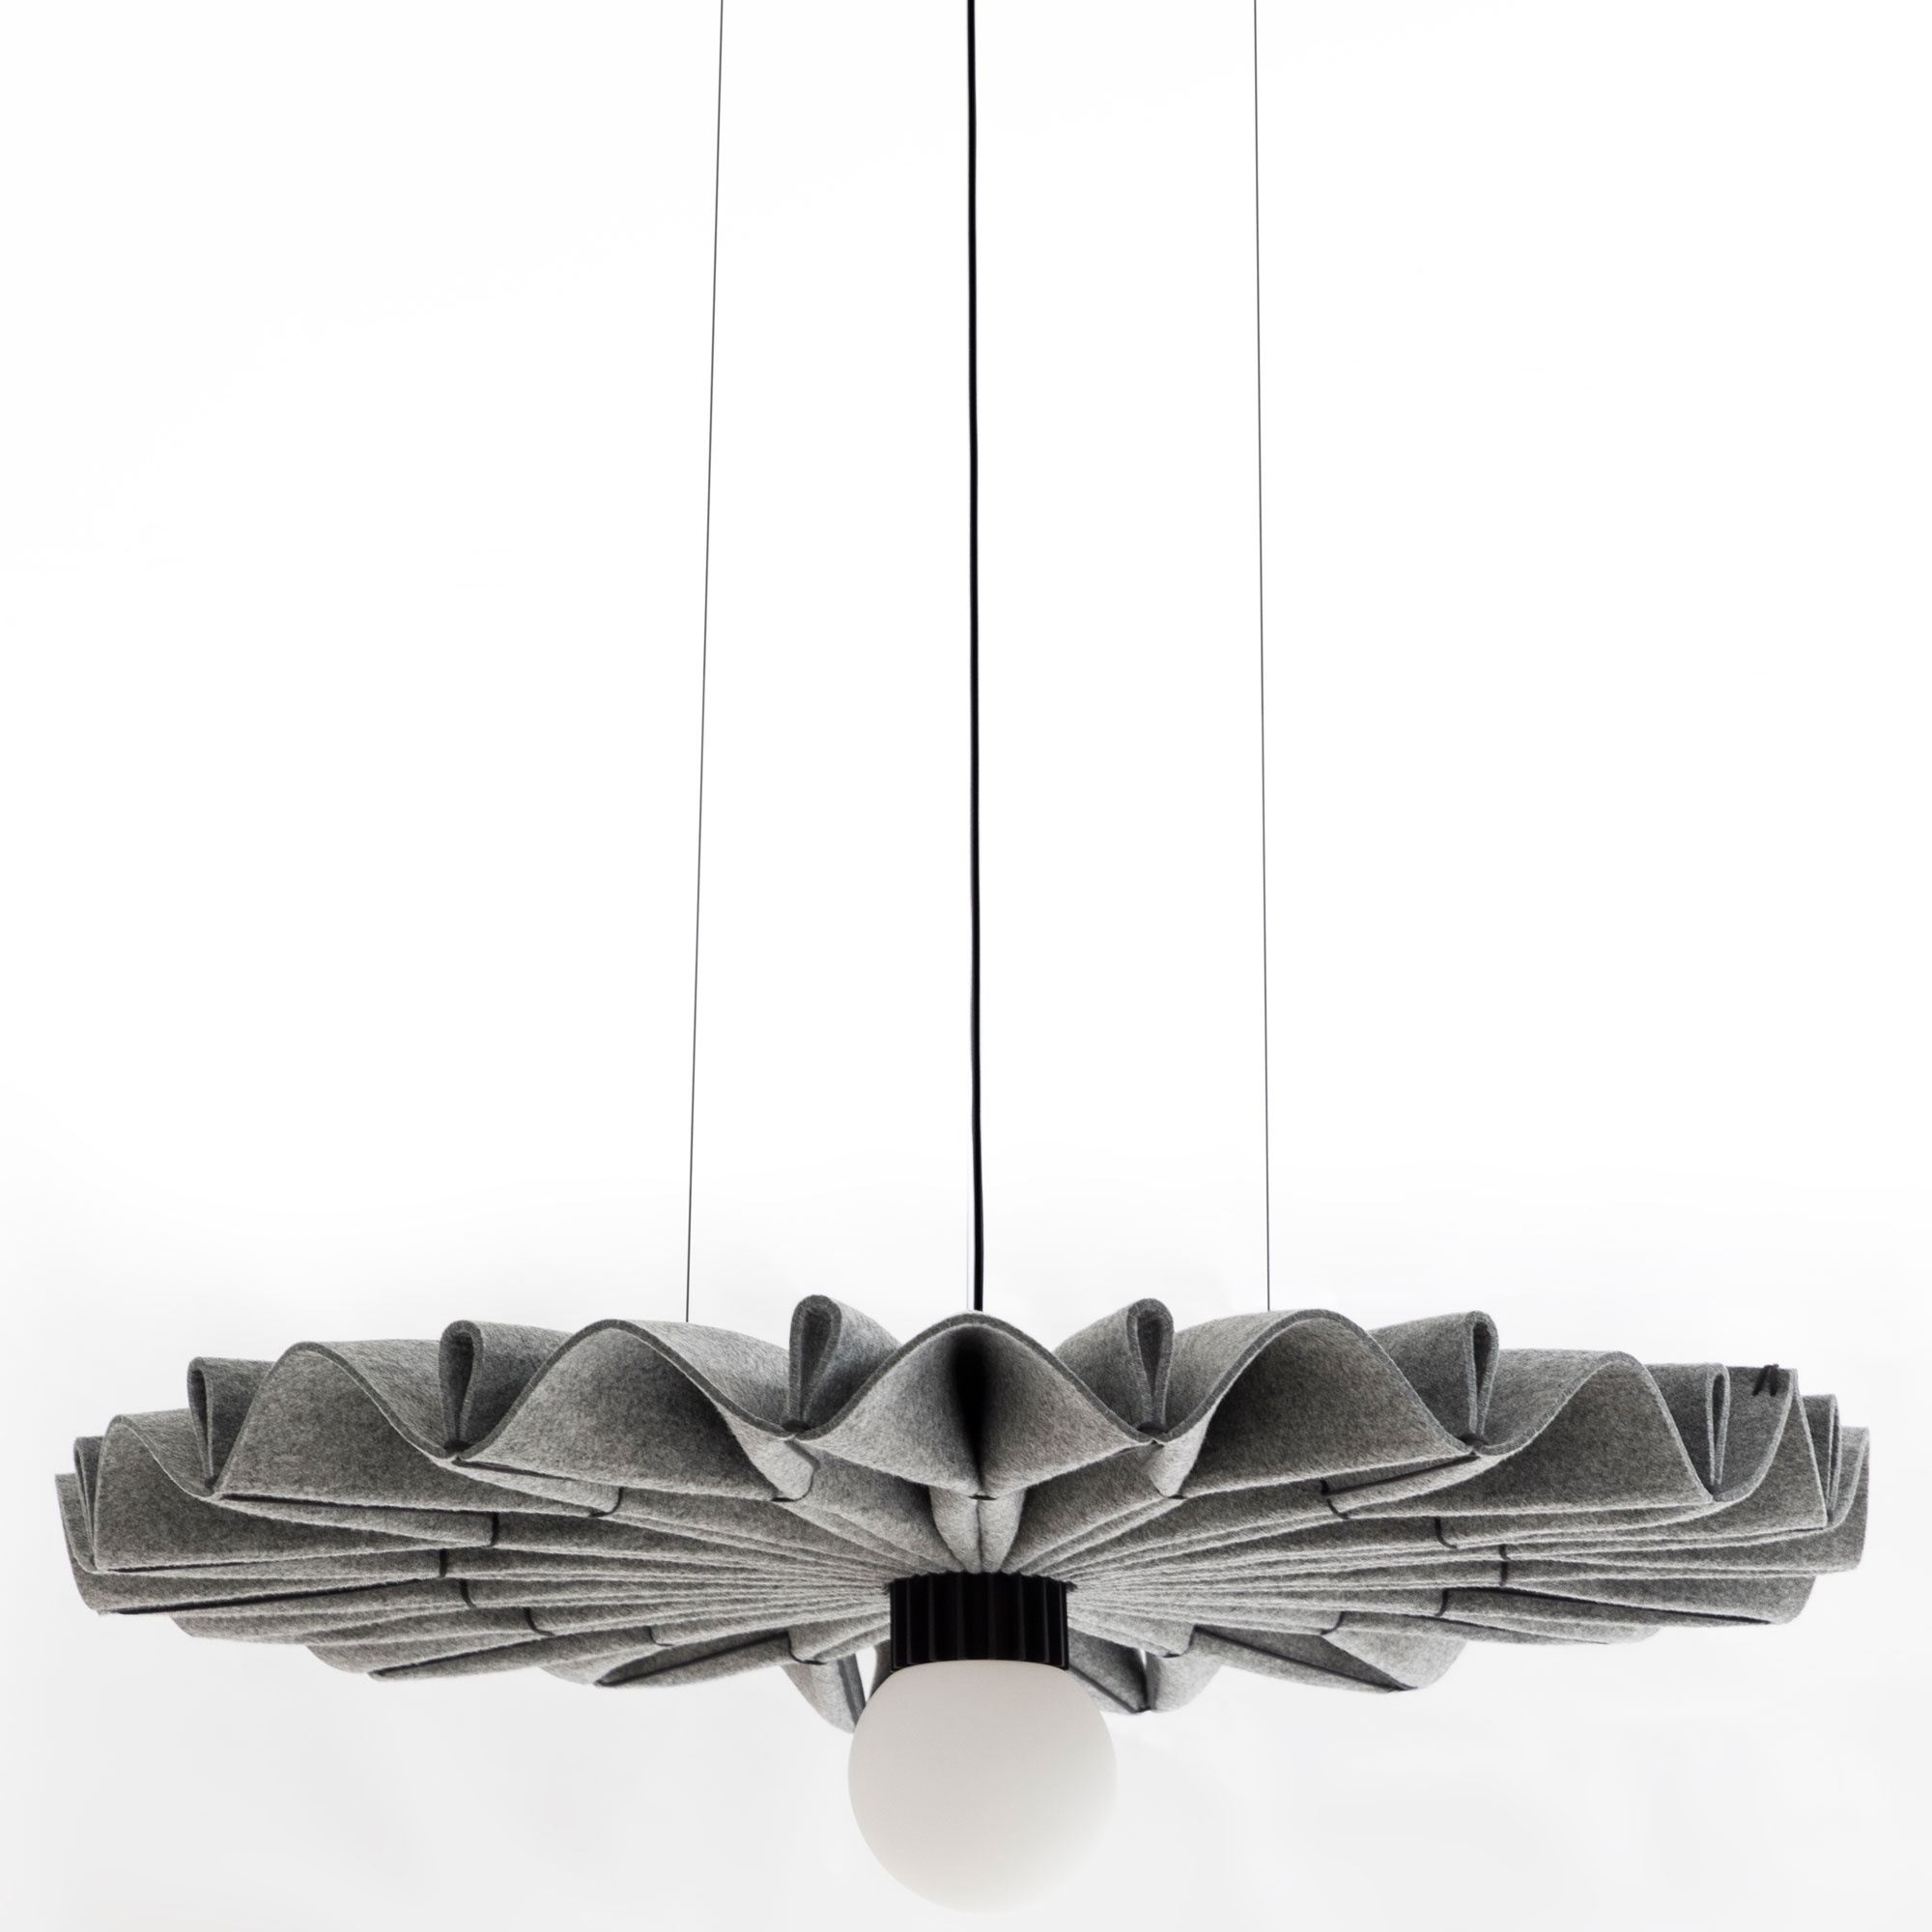 Buzzi & Buzzi Lighting buzzipleat pendant by buzzispace | pleat-led-edel-m-fe67